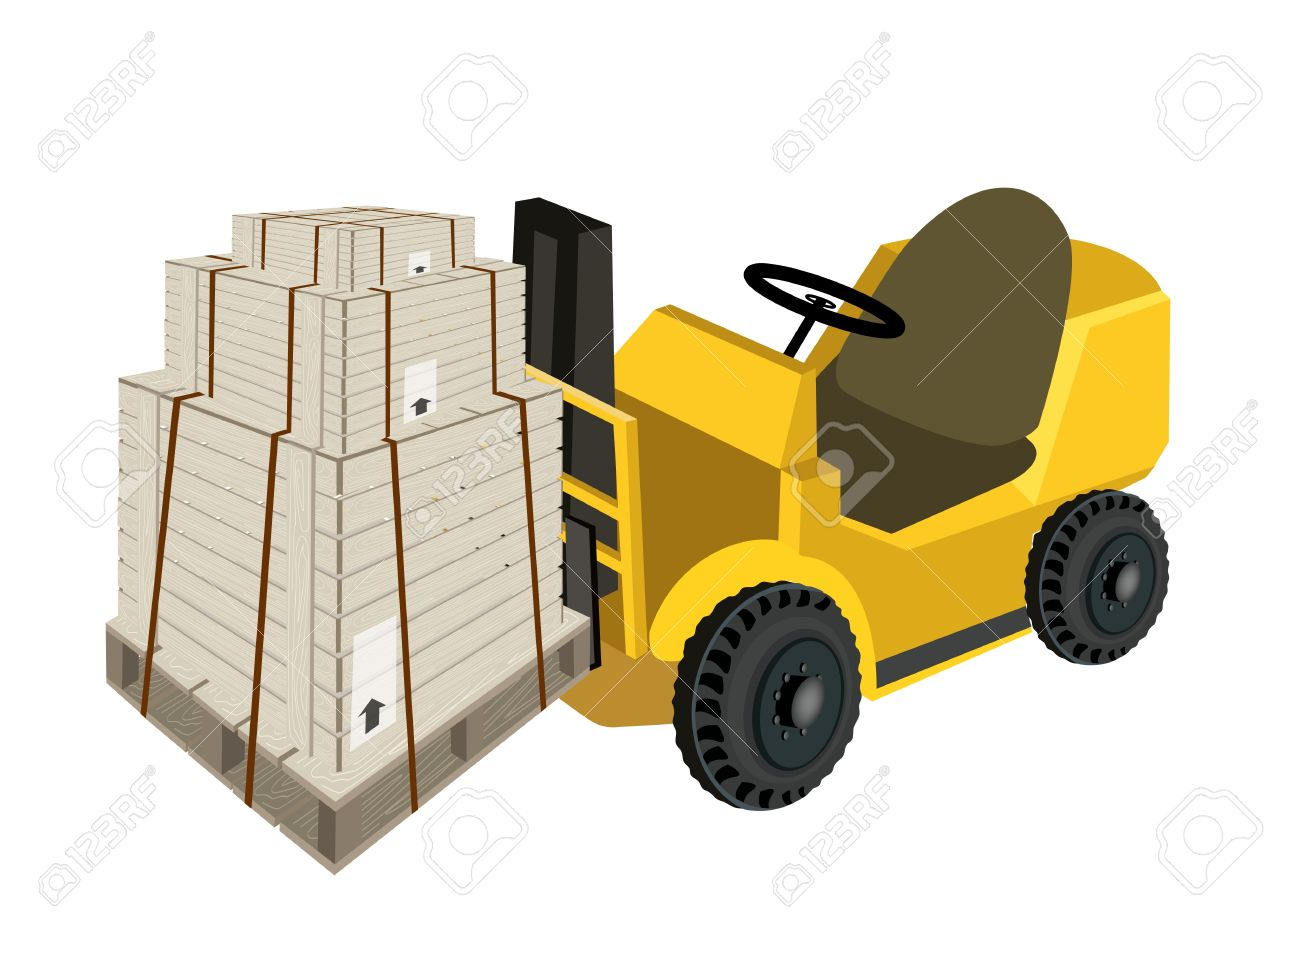 Powered Industrial Forklift, Fork Heavy Machine, Fork Truck Or.